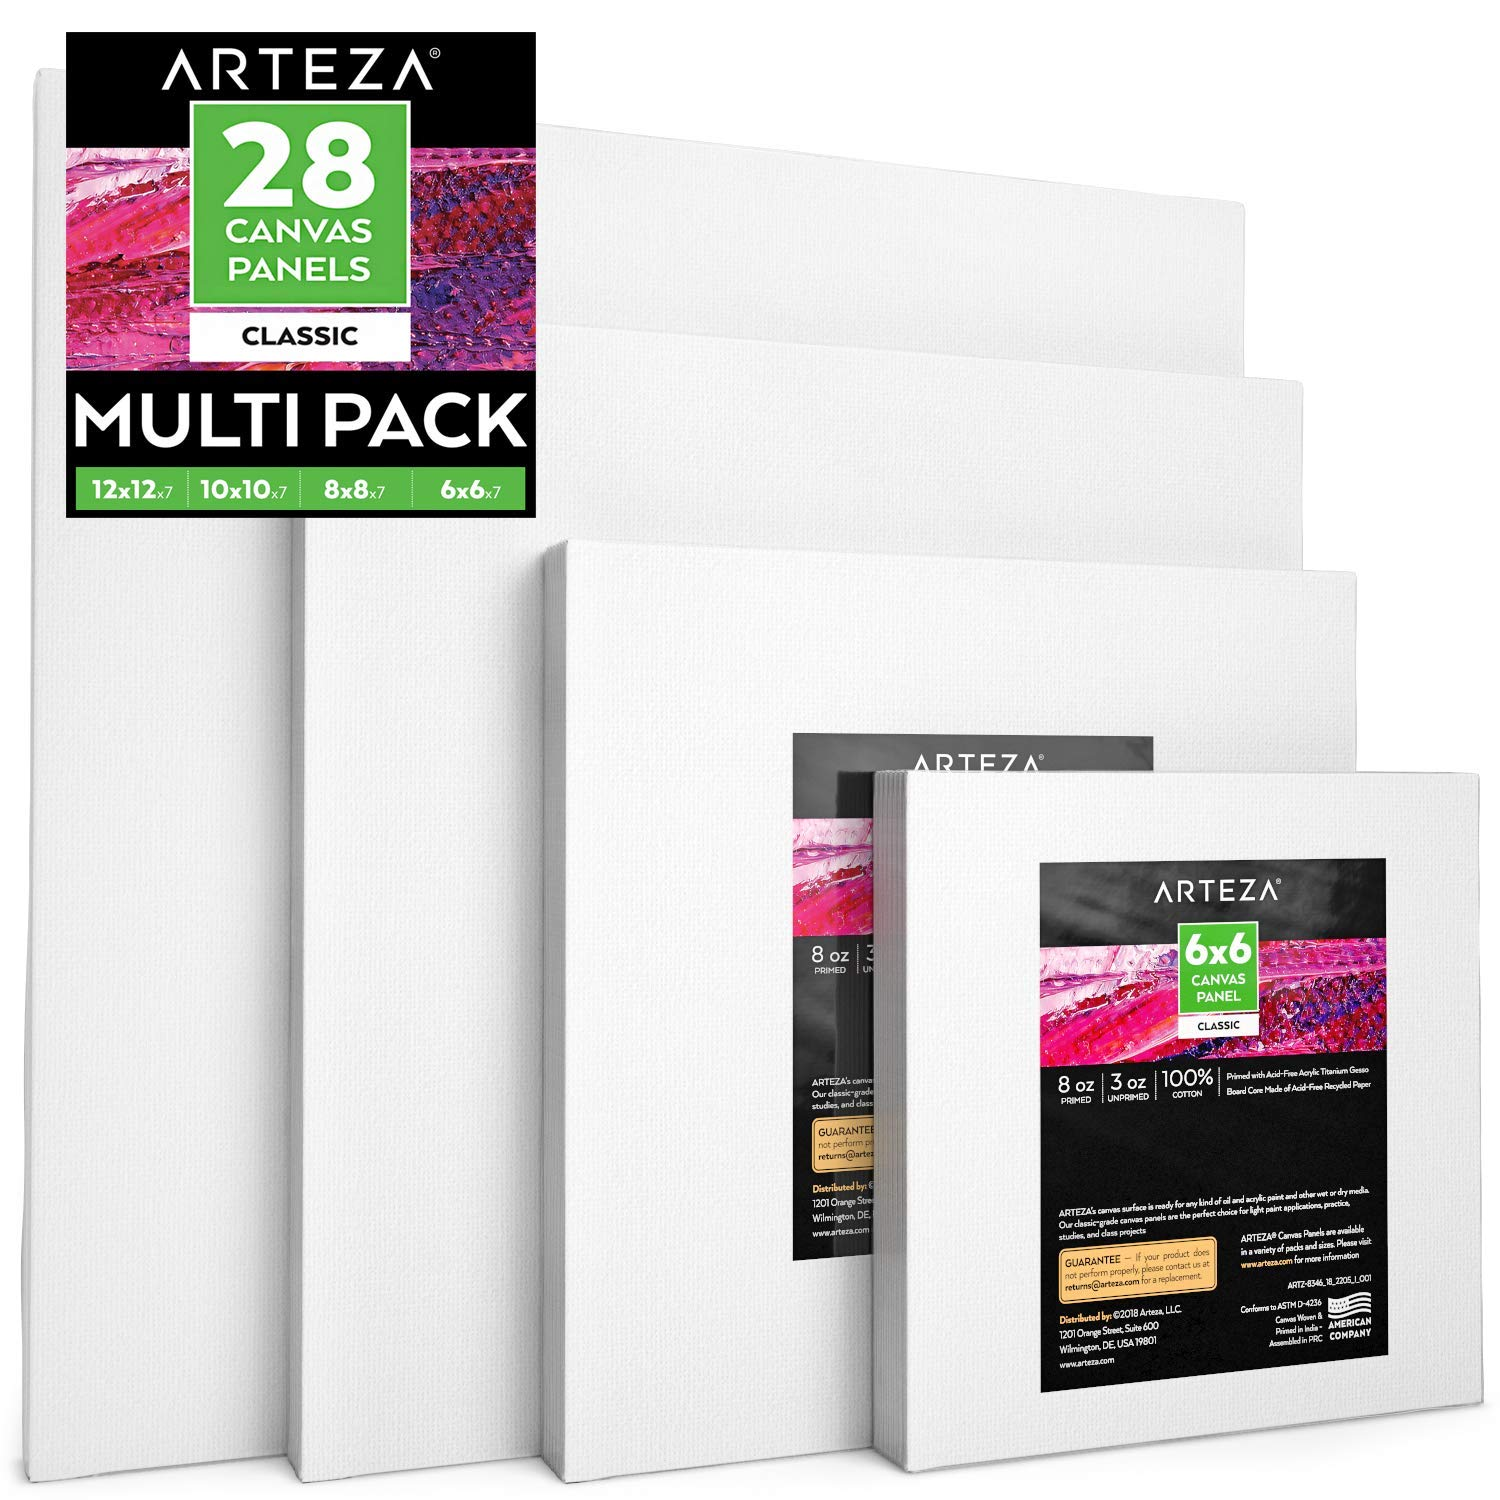 "B07G7HJ8JN Arteza Painting Canvas Panels Multi Pack, 6x6"", 8x8"", 10x10"", 12x12"" Set of 28, Primed White, 100% Cotton with Recycled Board Core, for Acrylic, Oil, Other Wet or Dry Art Media, for Artists 71BzhXqVYlL"